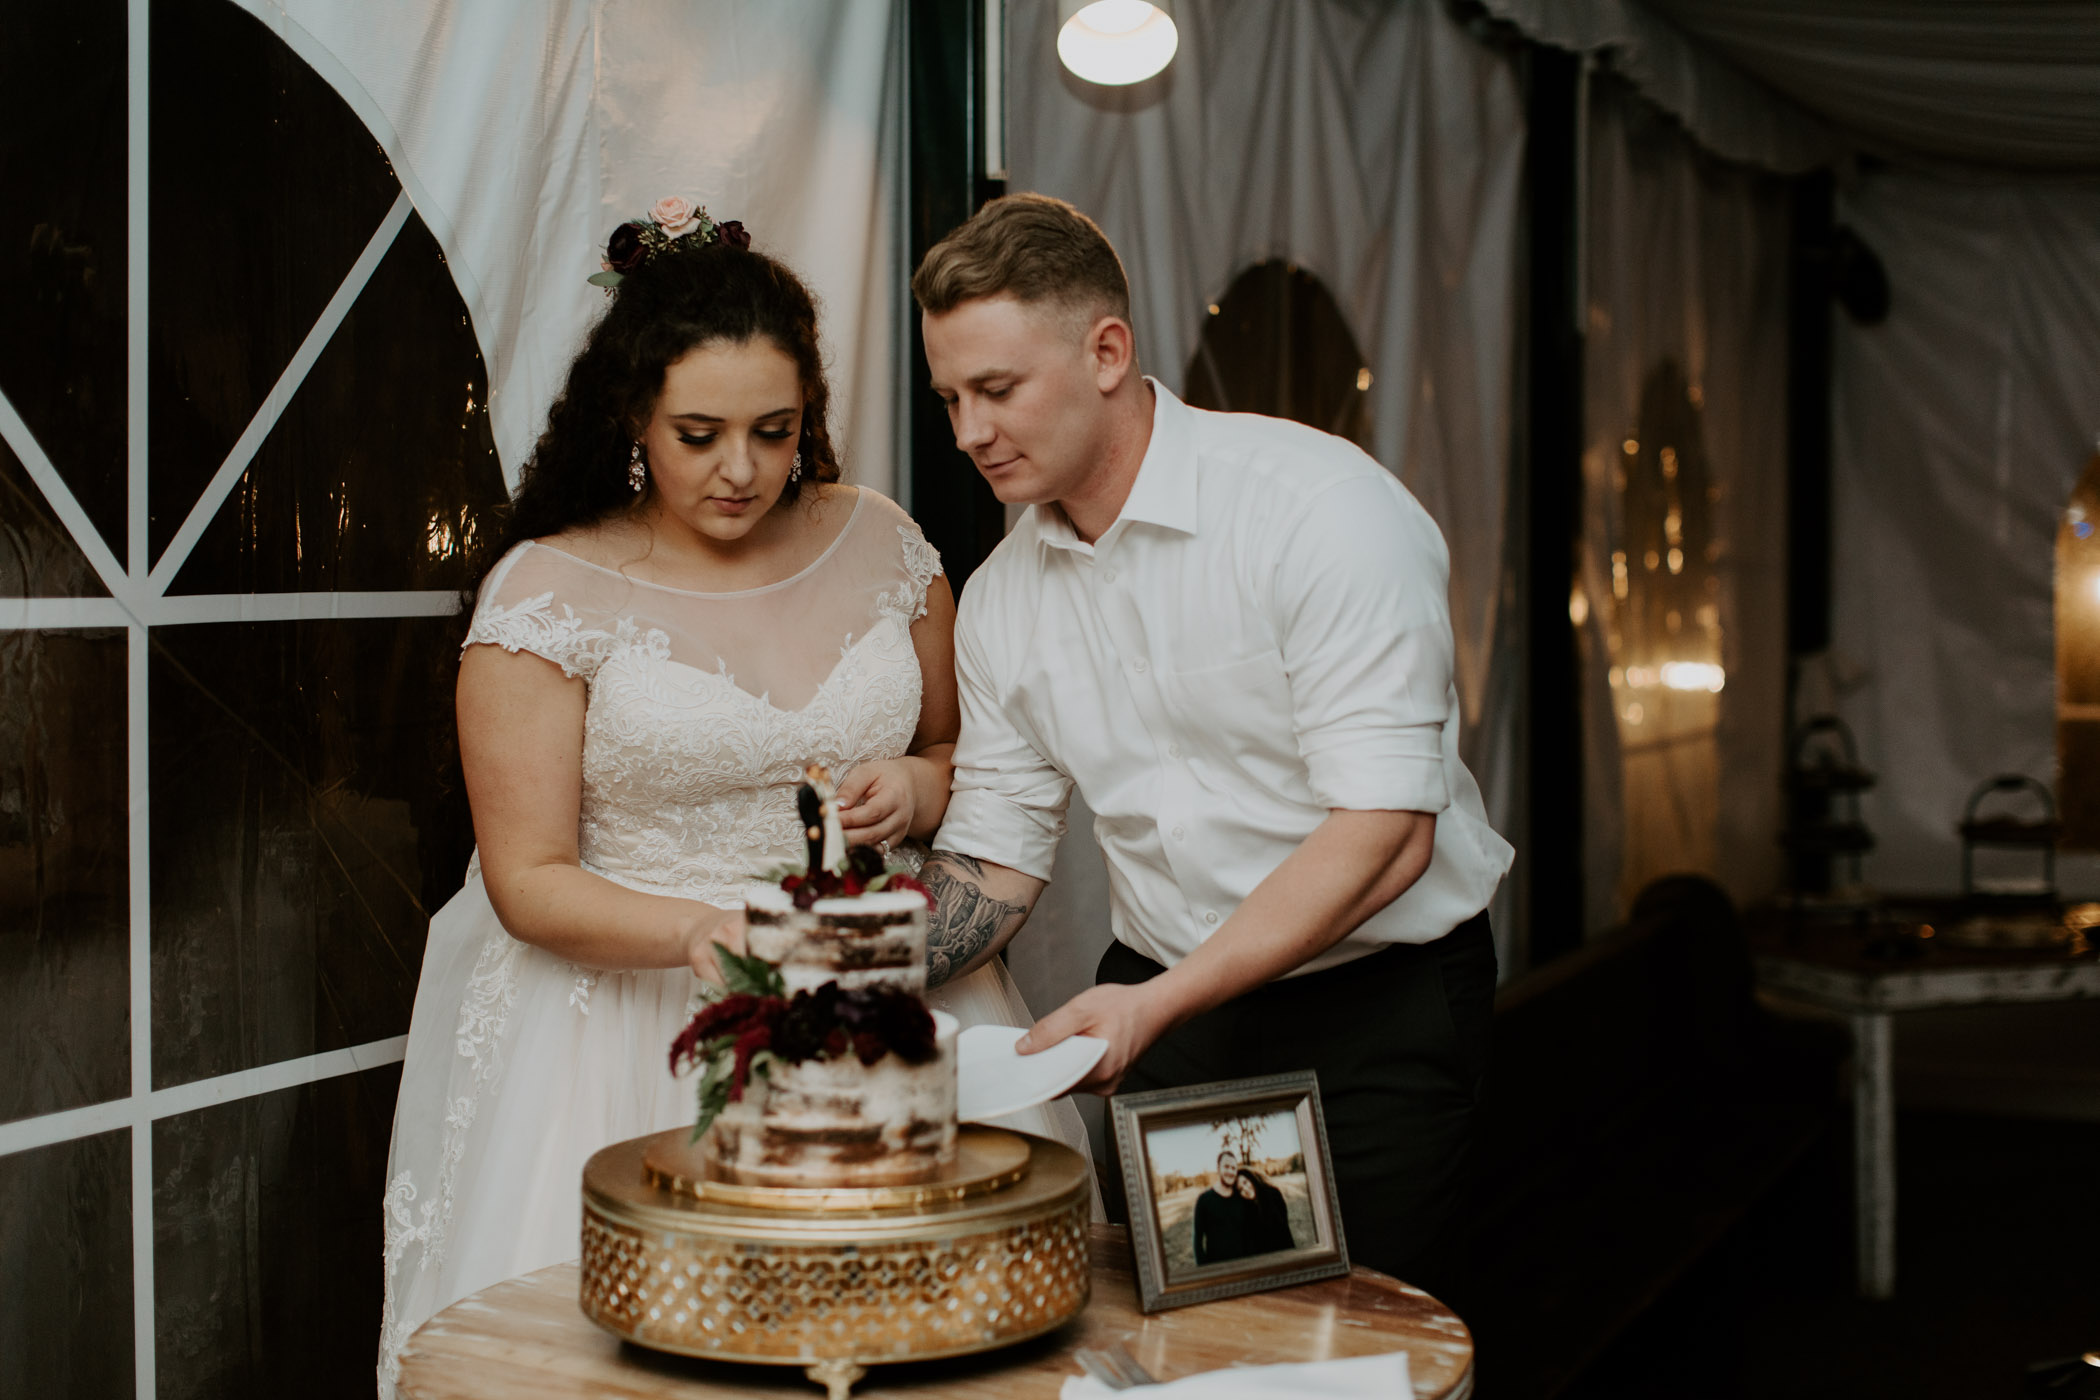 Bride and groom cutting the cake on their wedding day